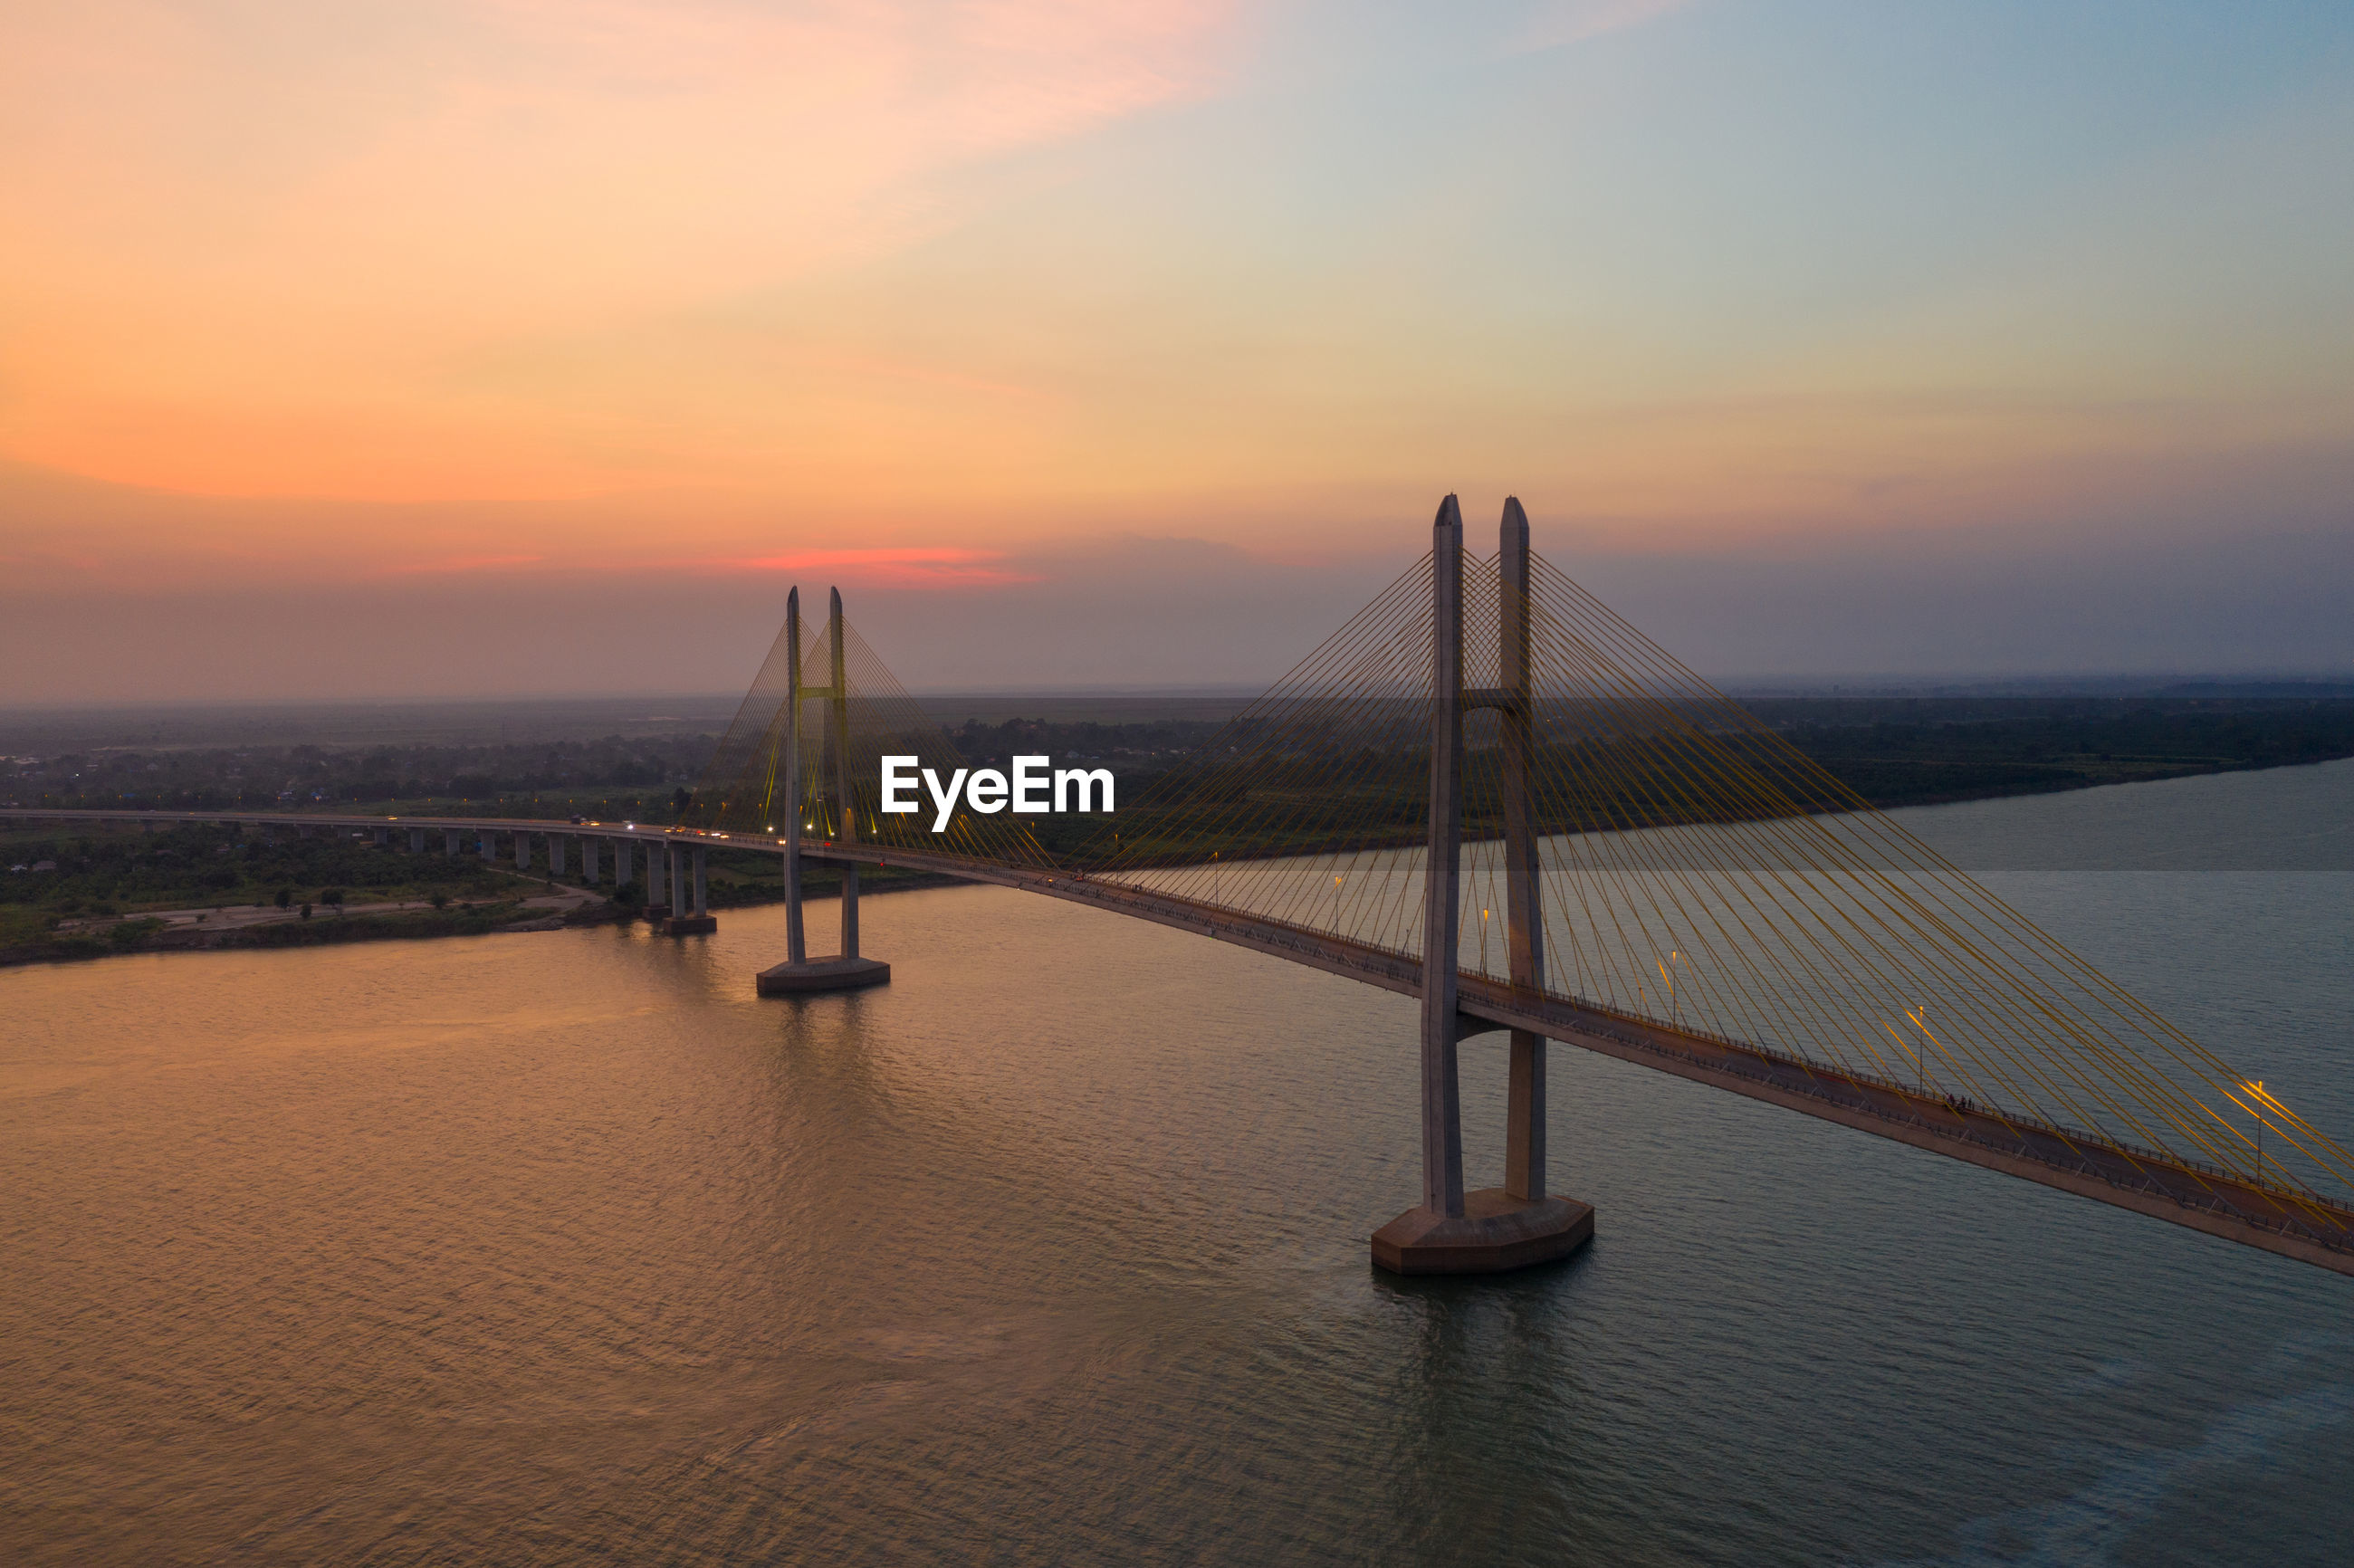 View of bridge over sea against sky during sunset